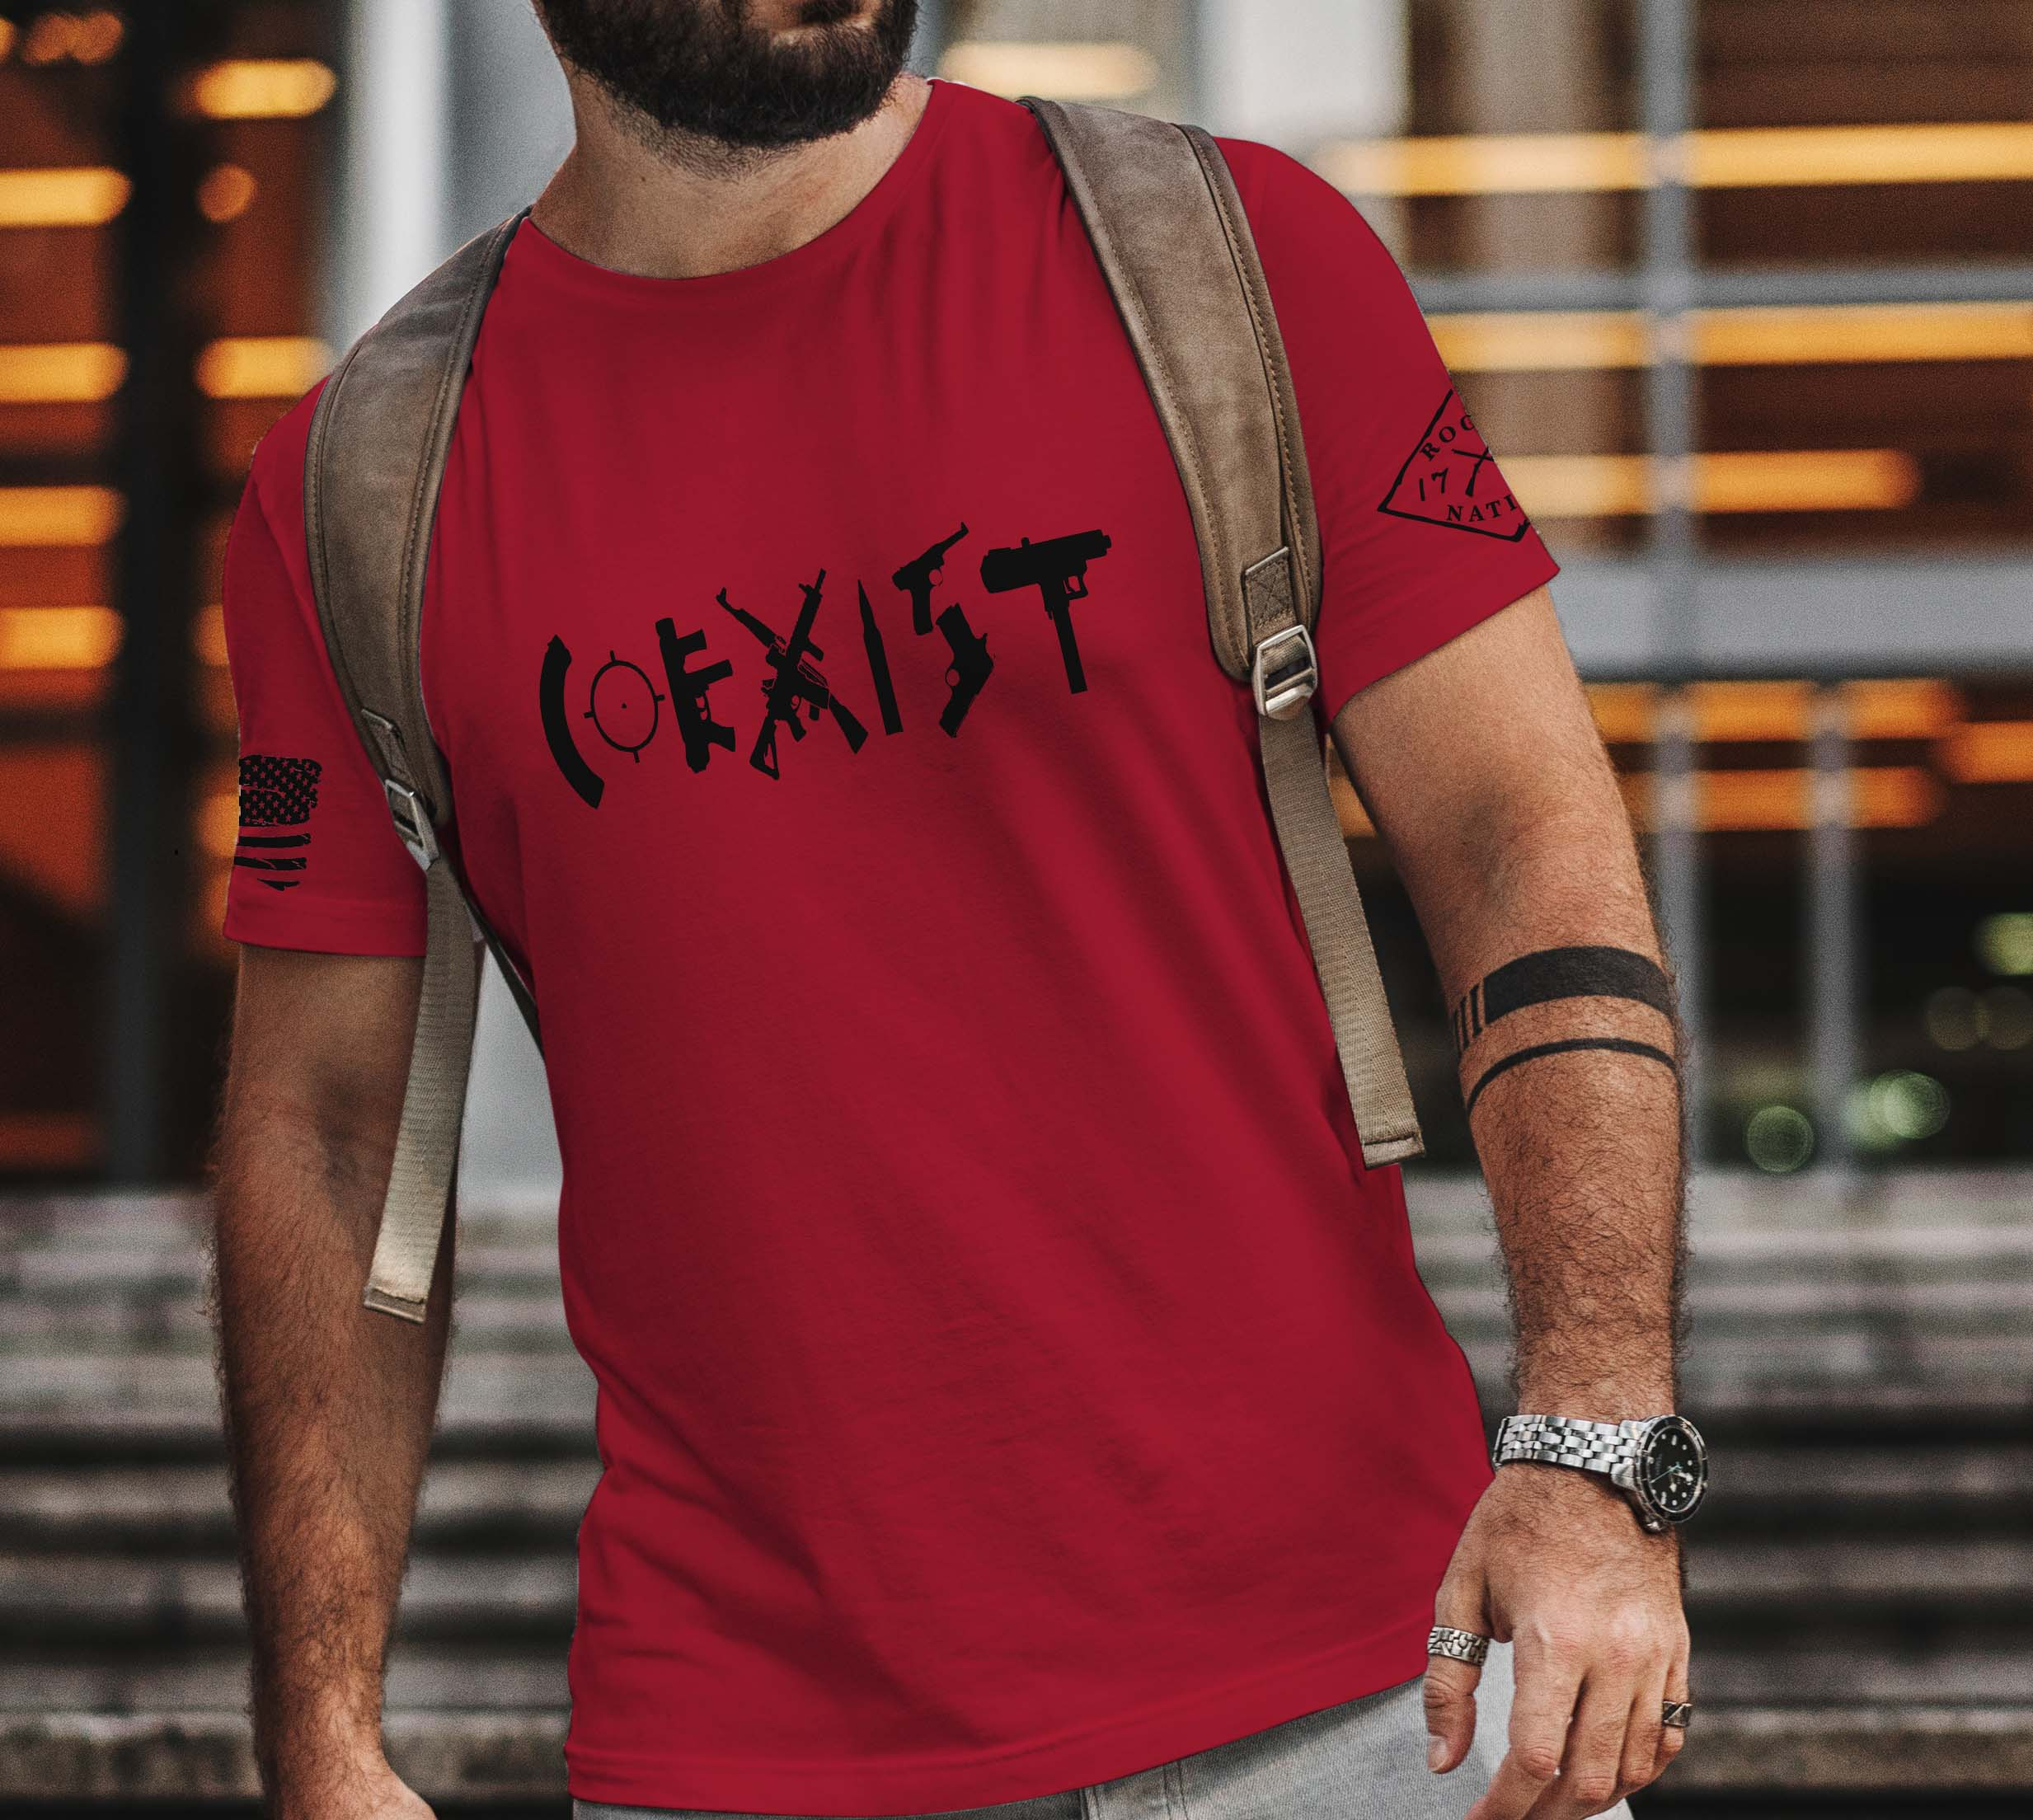 t-shirt coexist on red mens